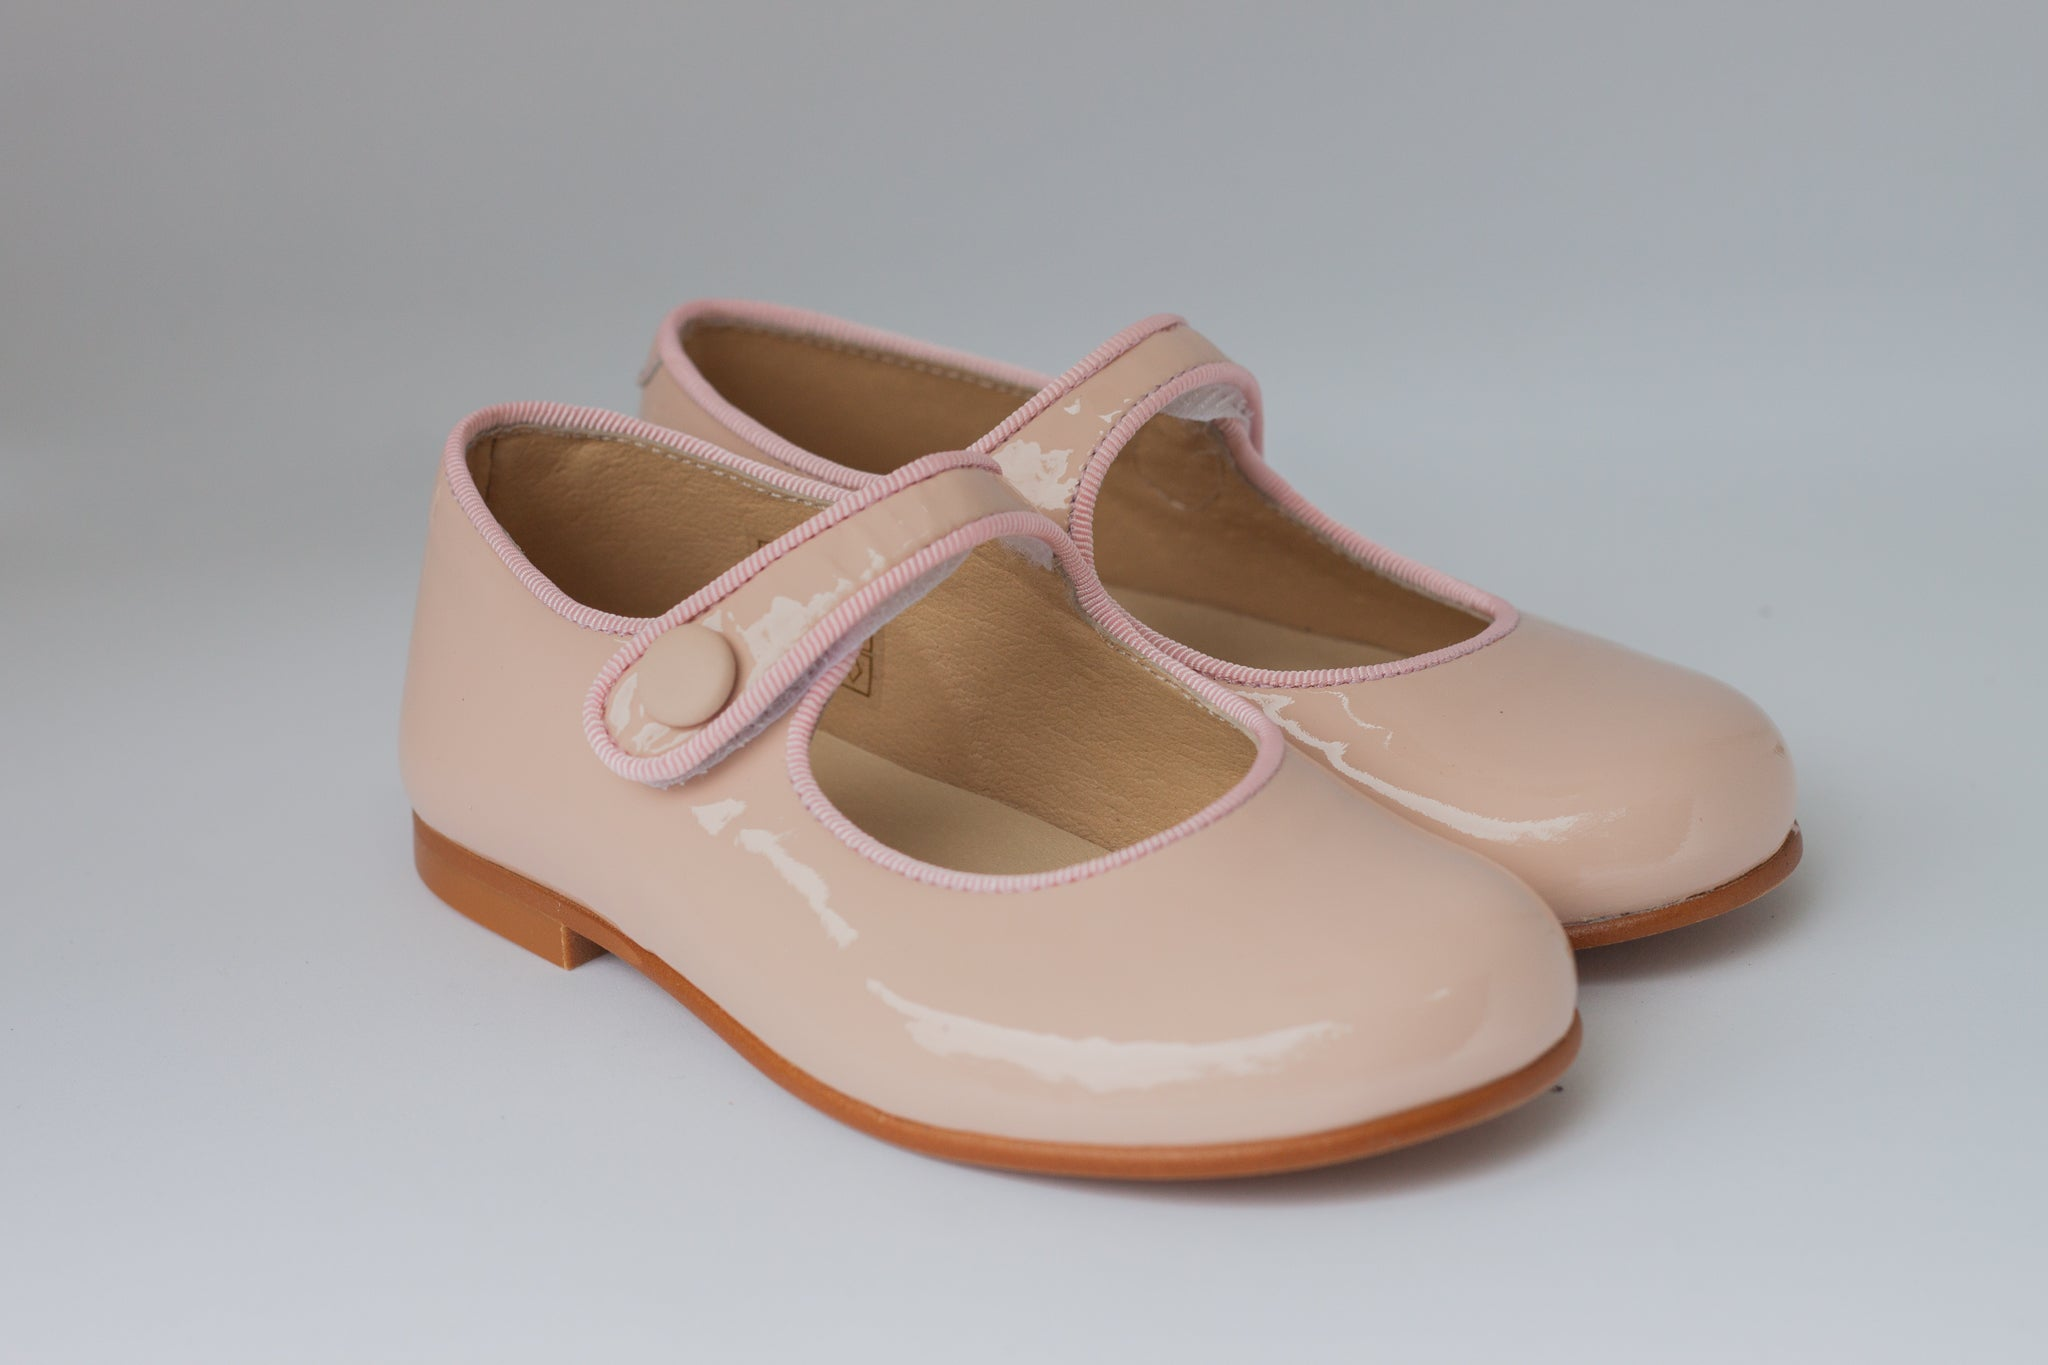 Nude pink patent leather mary jane with velcro closure and pink trimming-Girls Shoes-Hopscotch Shoes Australia.png